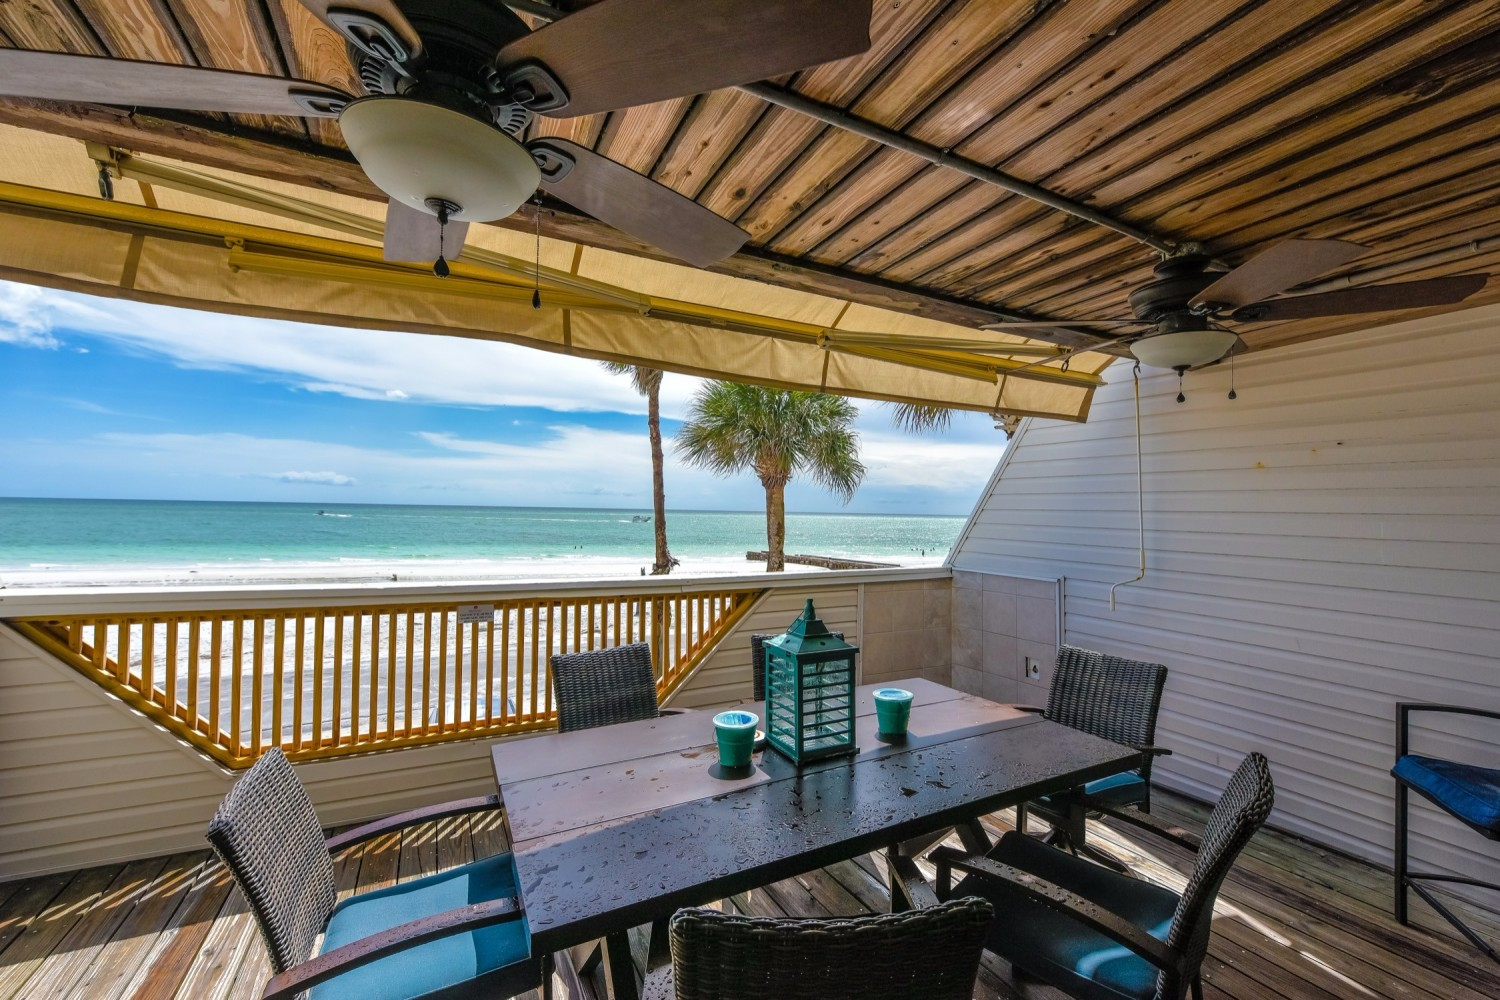 5 Bed/4 Bath Beachfront Home - Siesta Key Vacation Rentals